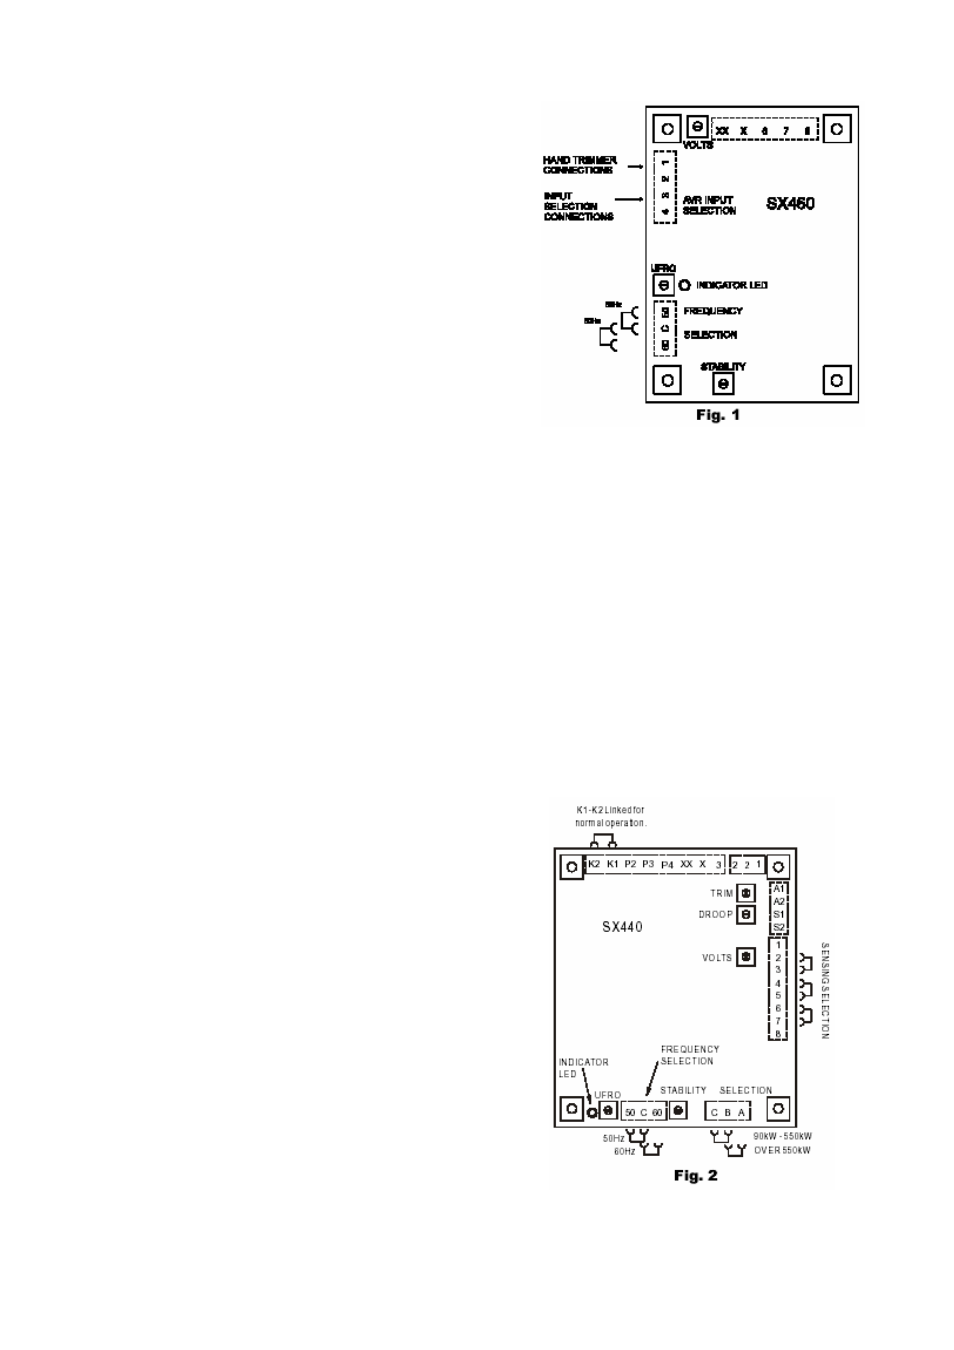 pi manufacturing ac generators page12 pi manufacturing ac generators user manual page 12 43 sx460 avr wiring diagram at bayanpartner.co